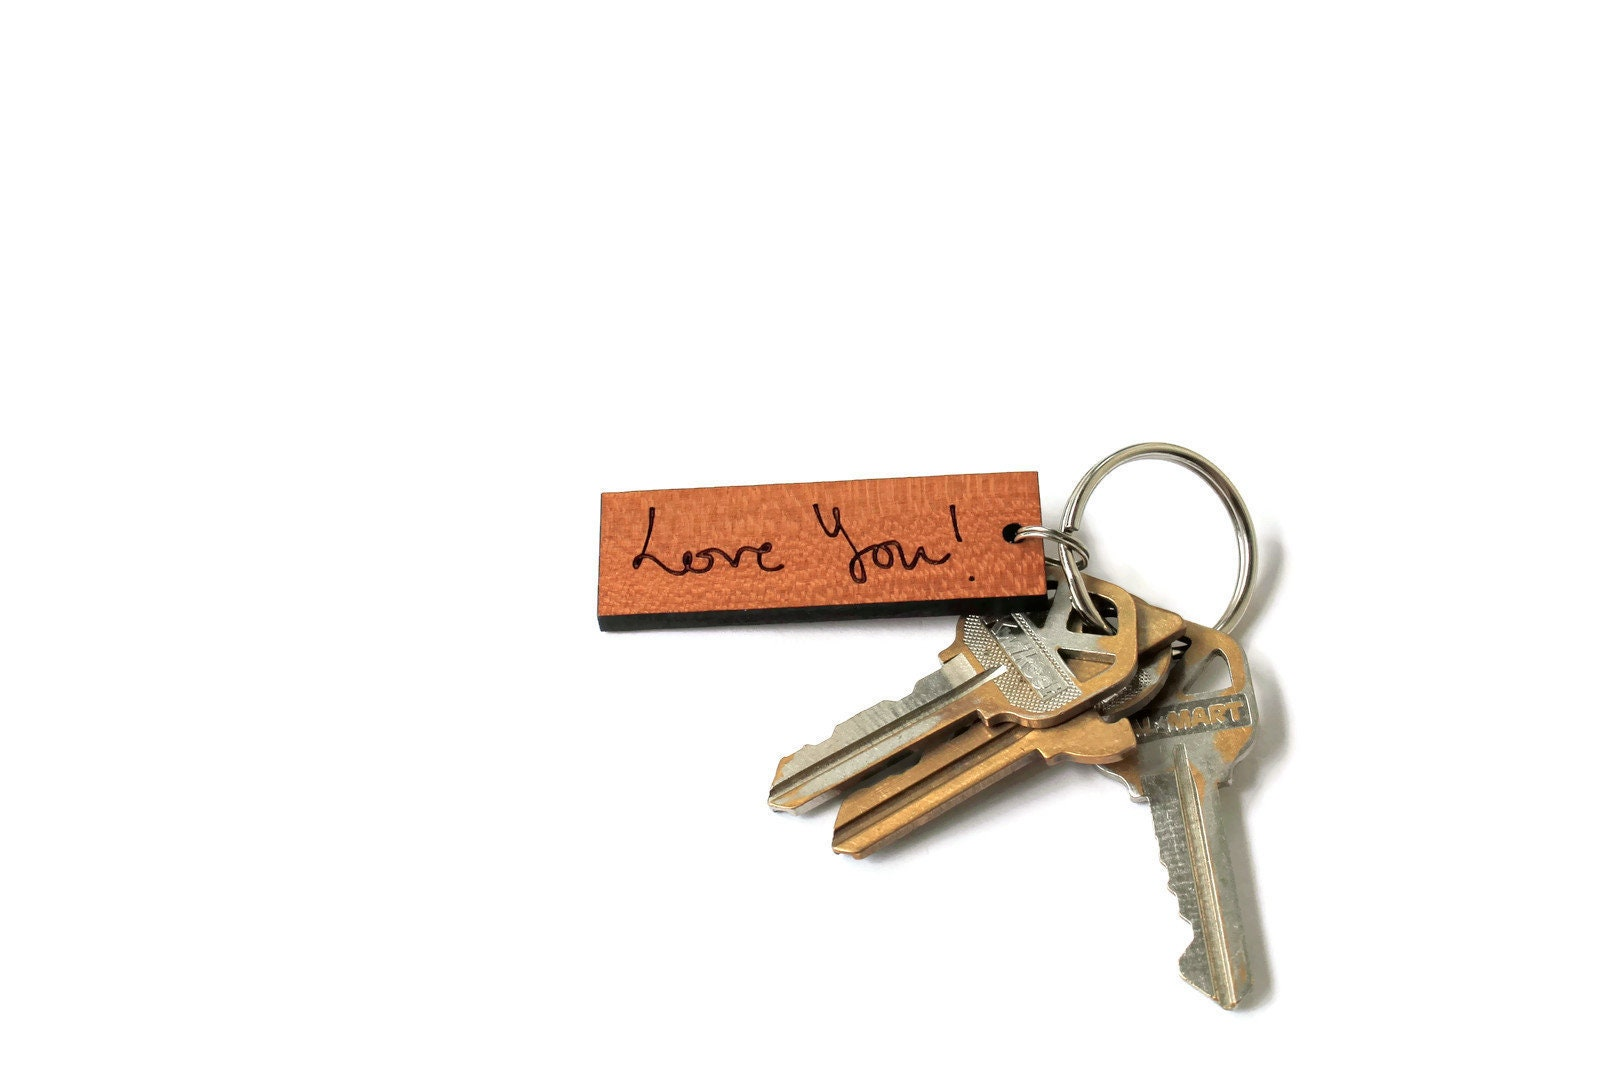 78c8fecf056b9 Personalized handwriting keychain made in the USA